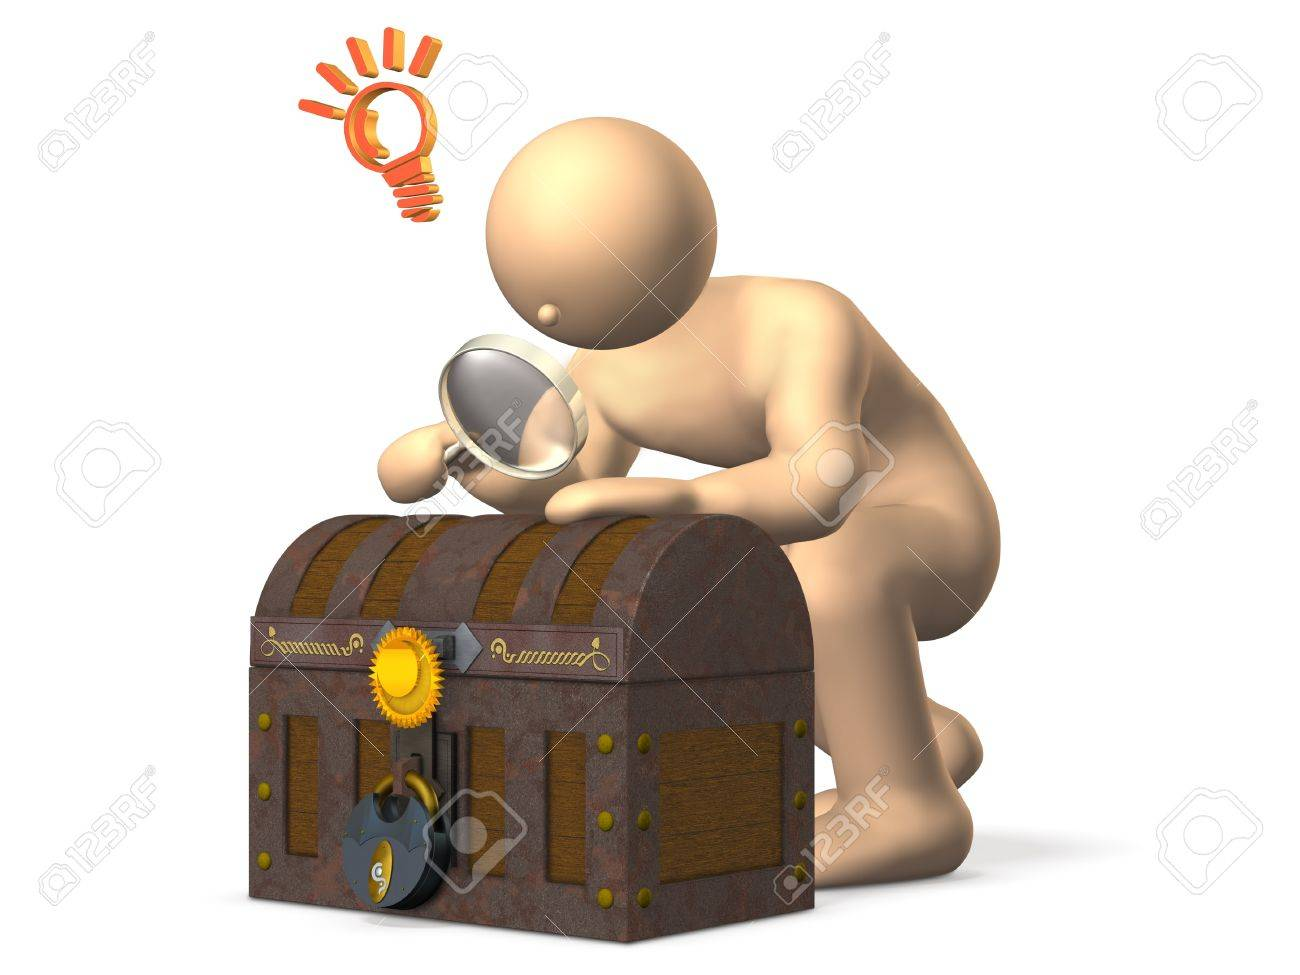 Archaeologists look at the antiquities, made a new discovery Stock Photo - 13866191